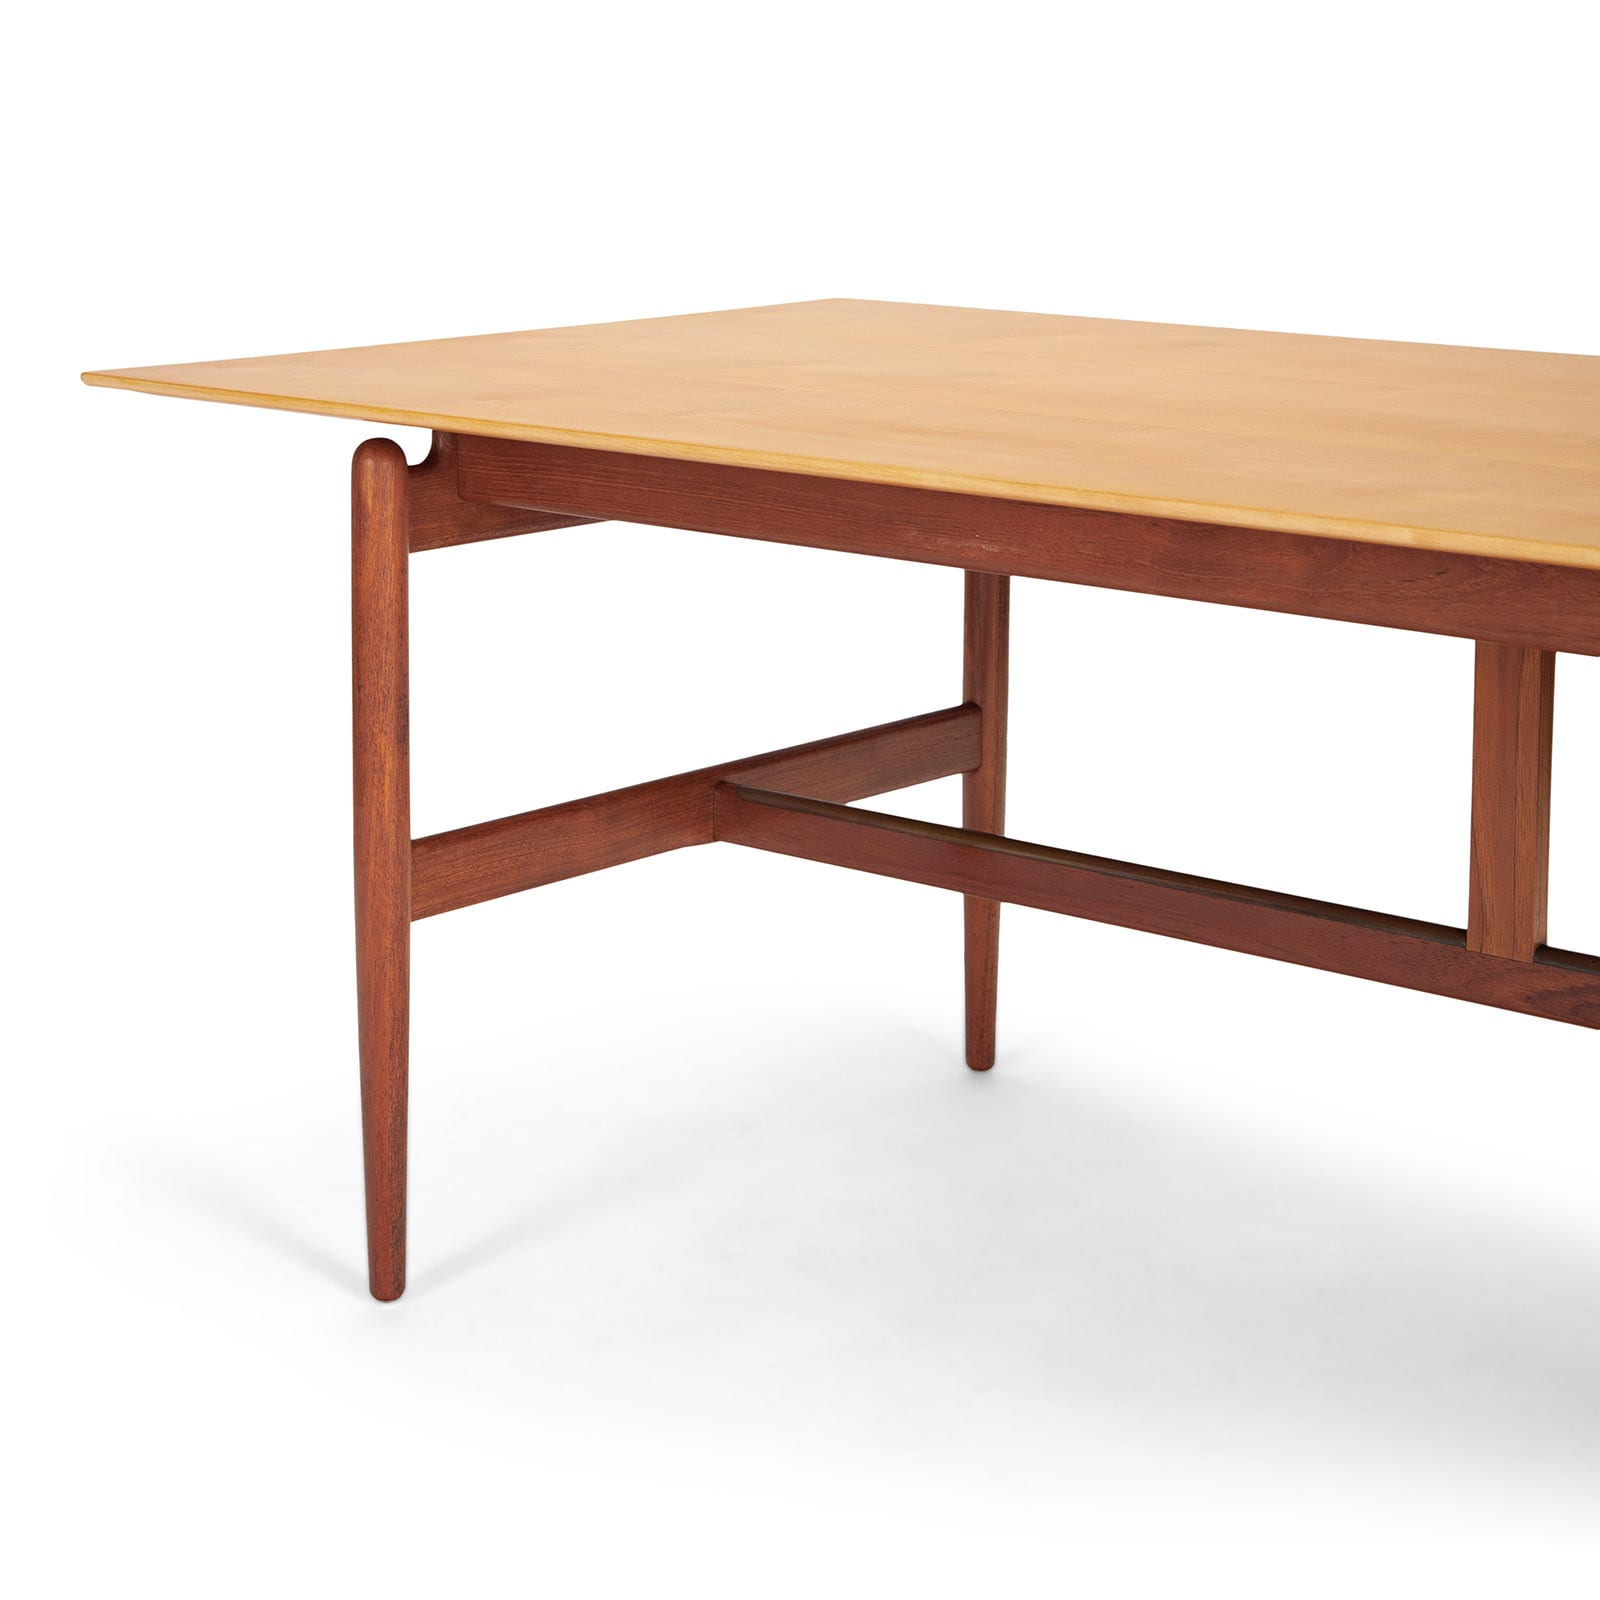 A freestanding work table